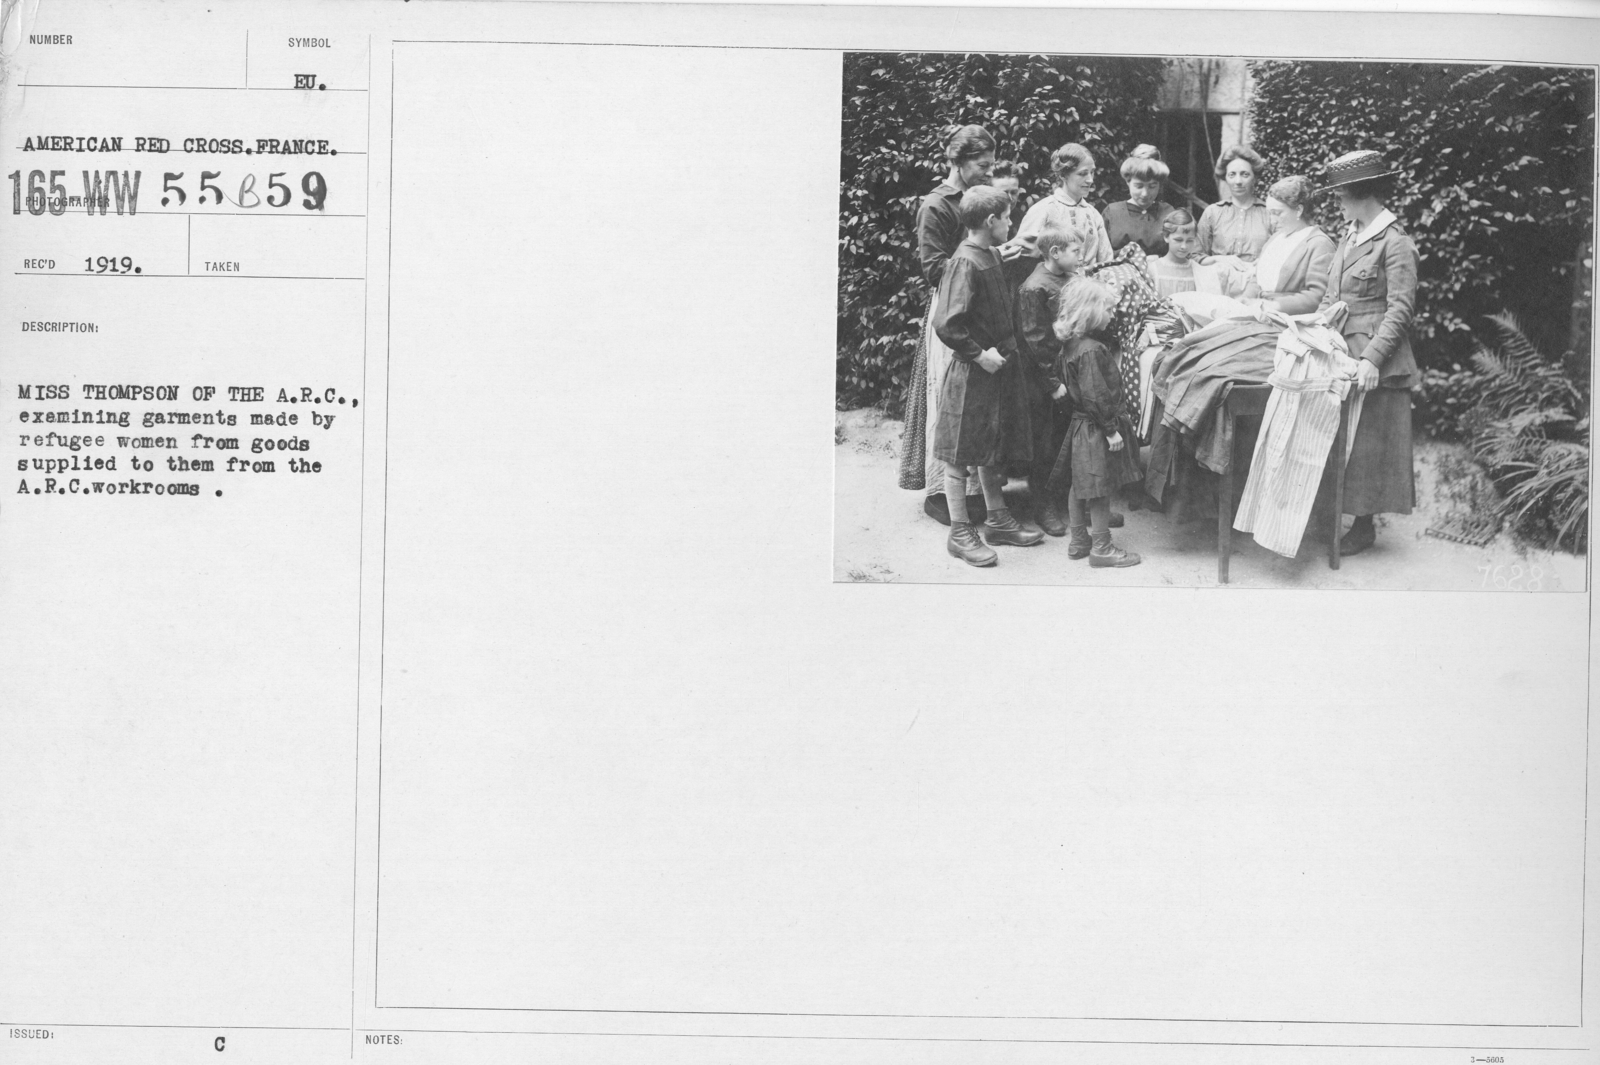 American Red Cross - N thru W - Miss Thompson of the A.R.C. examining garments made by refugee women from goods supplied to them from the A.R.C. workrooms